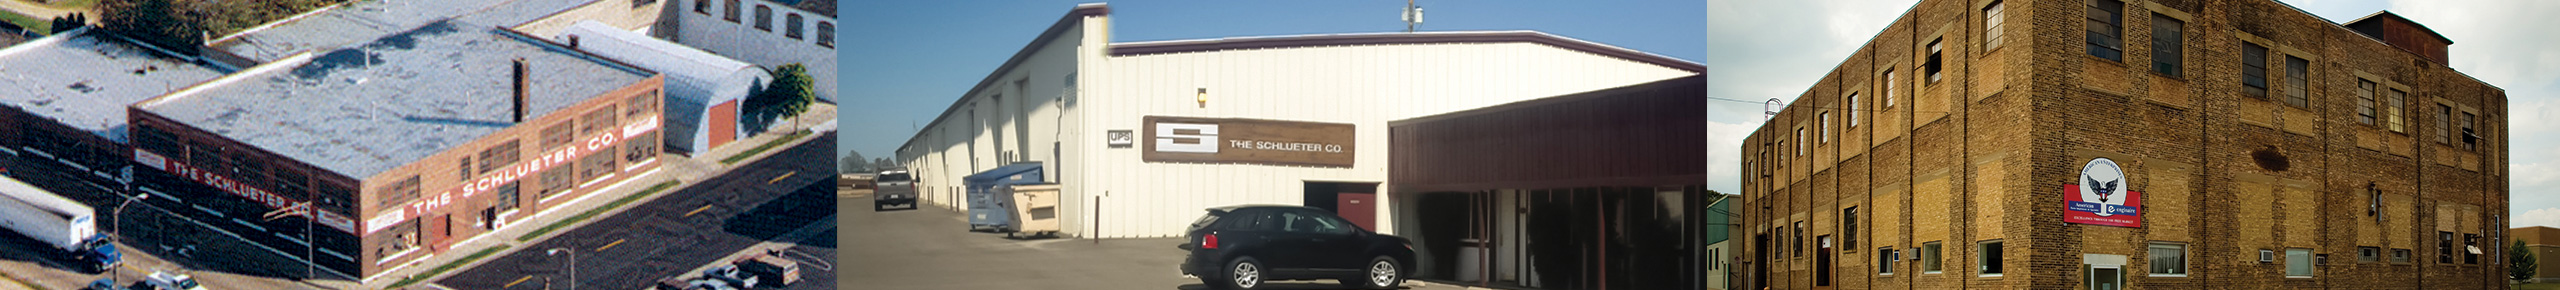 The Schlueter Company Banner